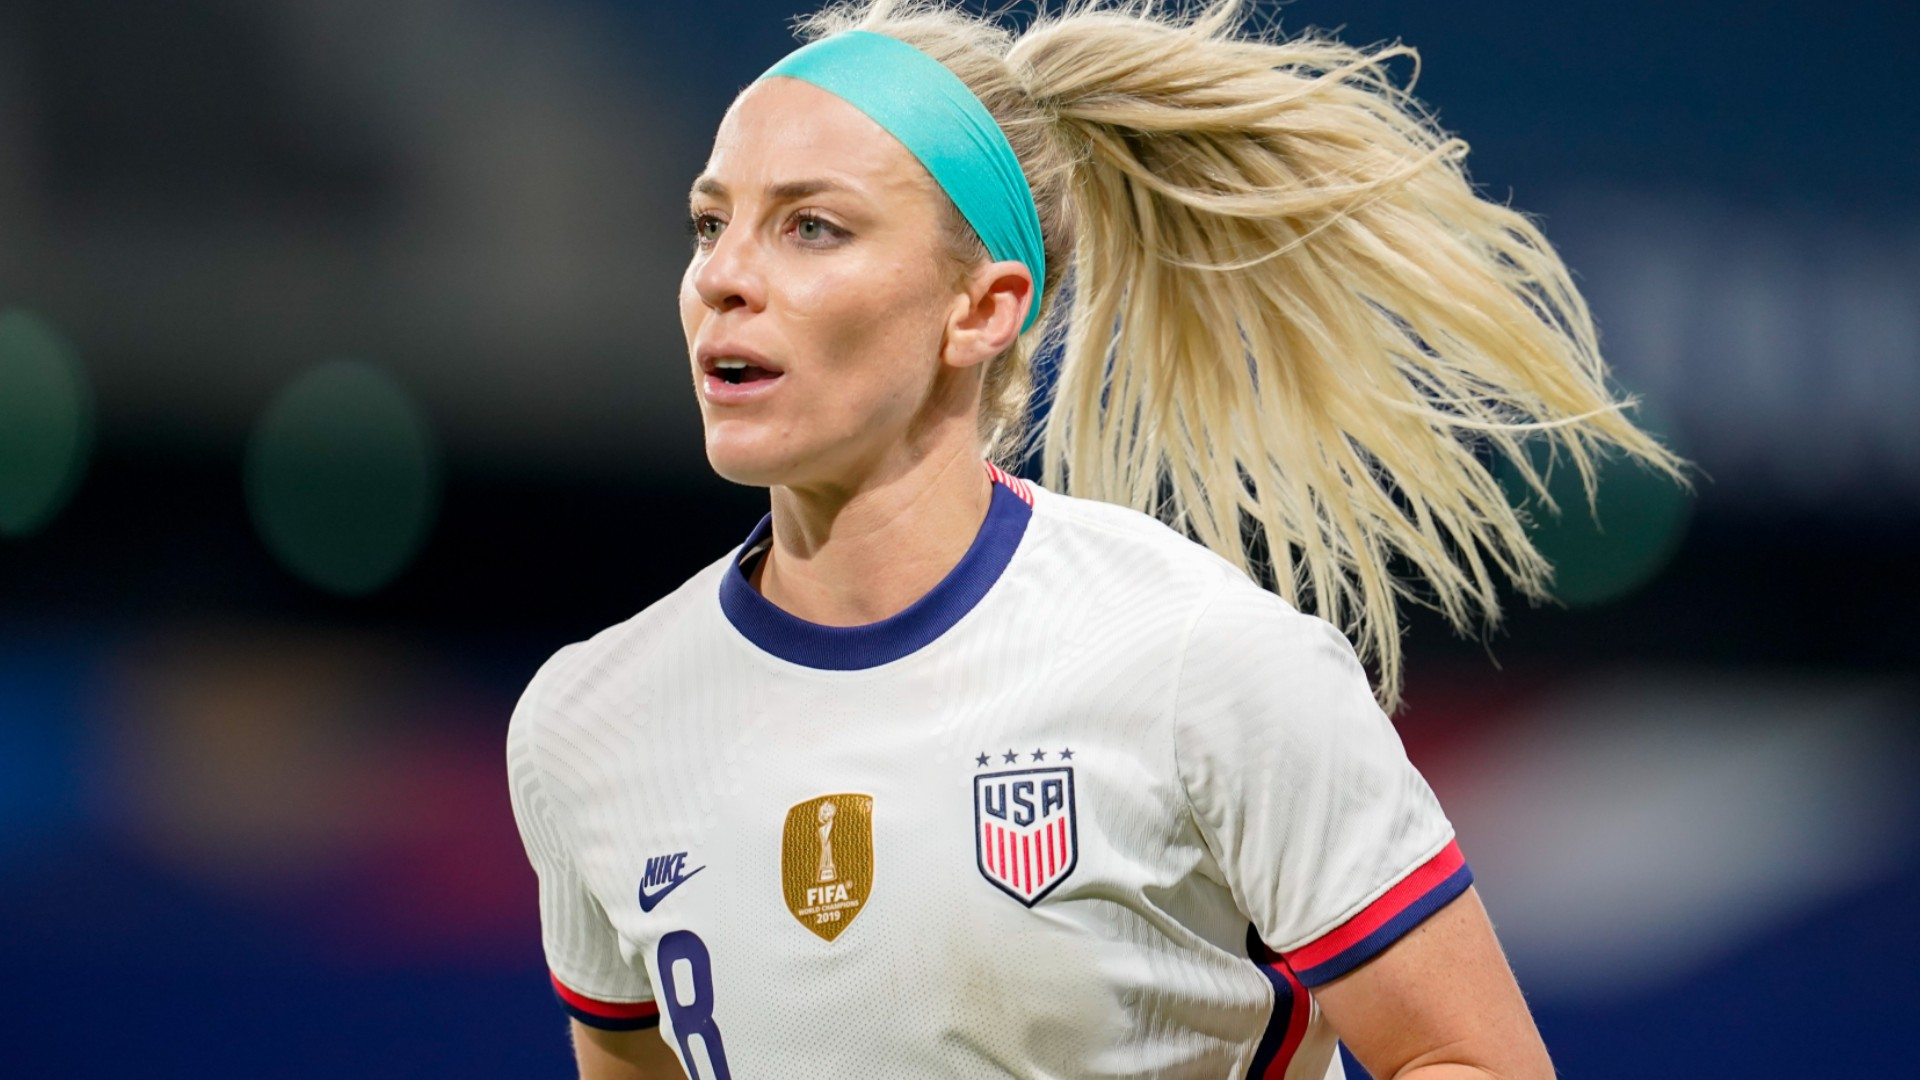 USWNT Vs Sweden Time, Channel & TV Show To Watch 2021 Olympics Women's Soccer Game